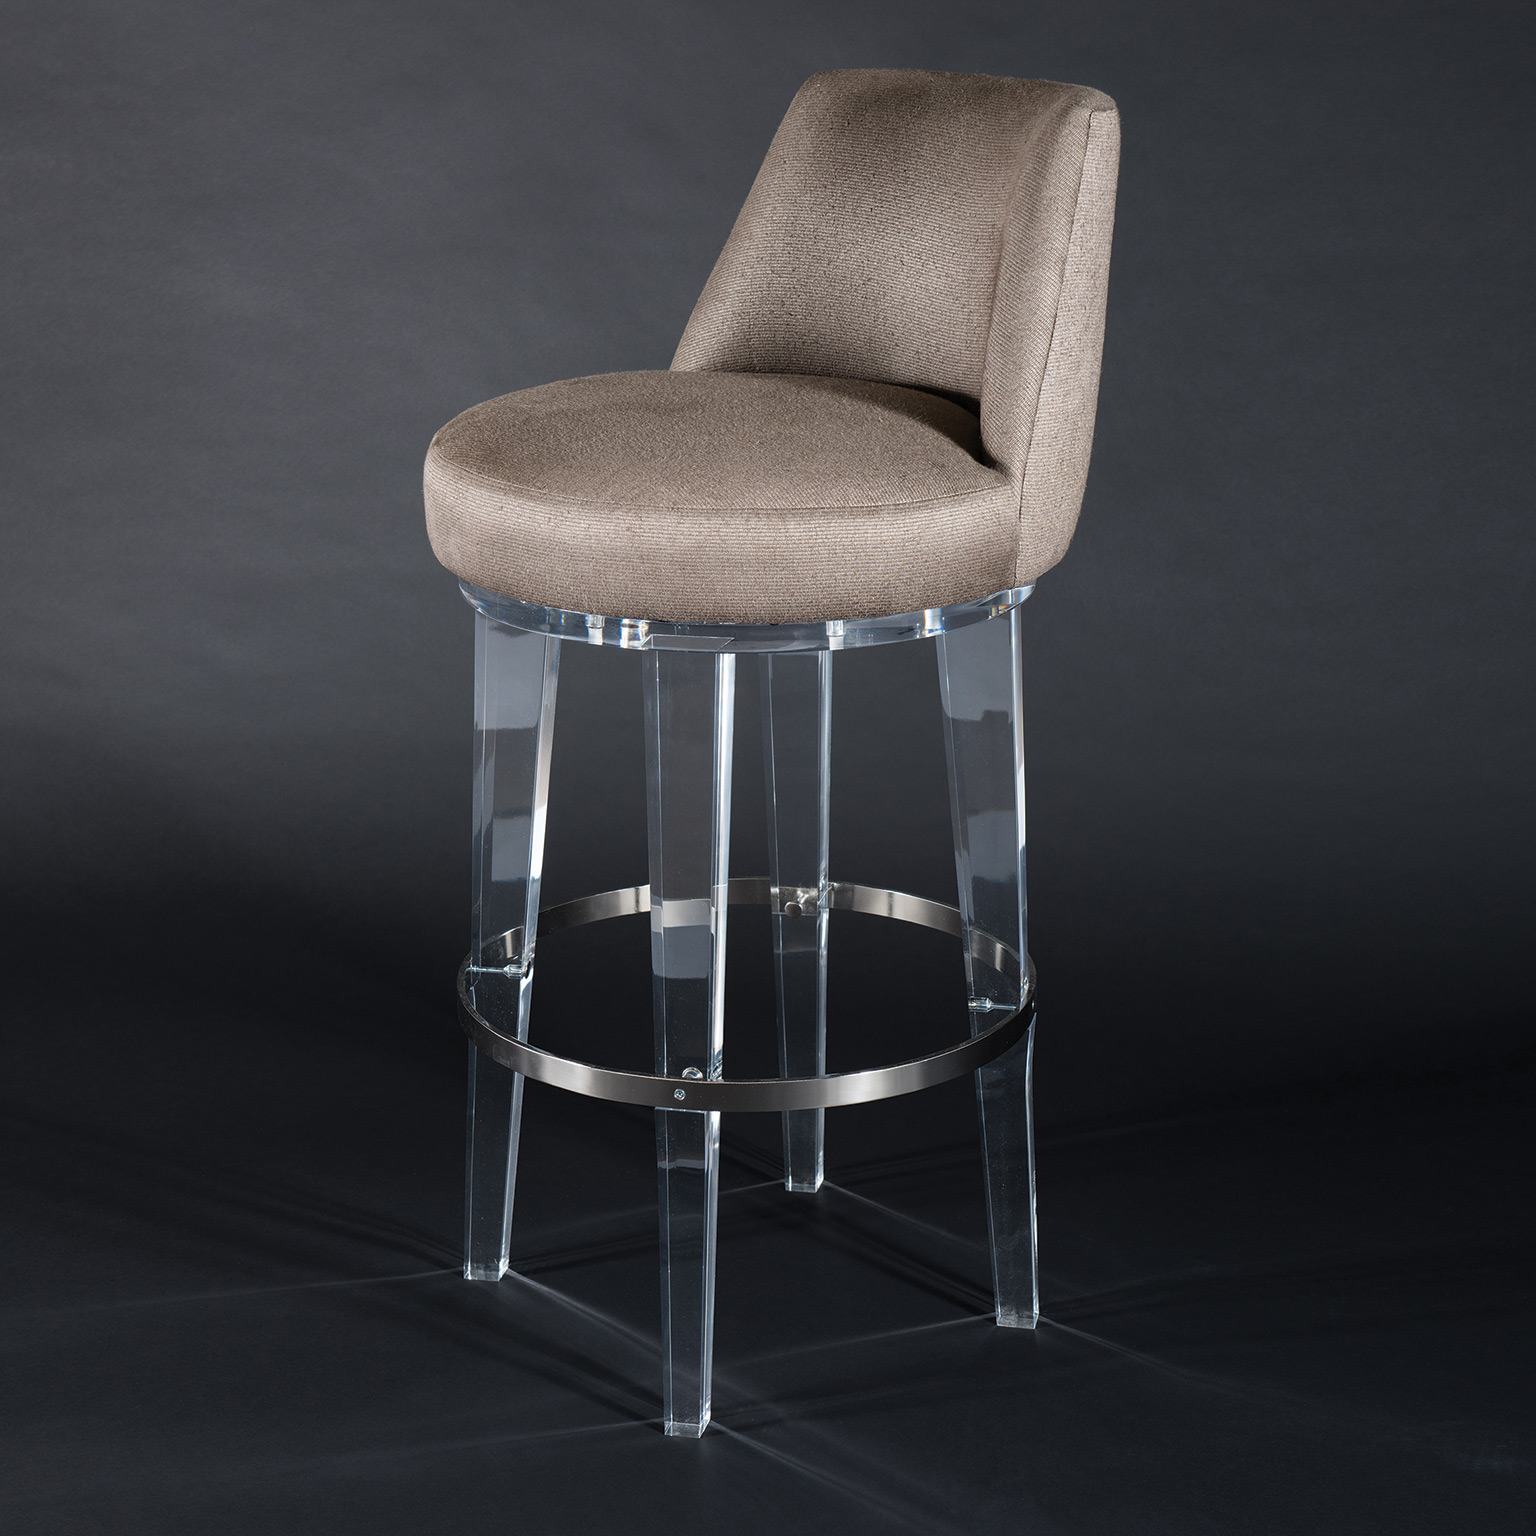 Image of: High Quality Elegantly Crystal Lucite Legs Bar Chair Modern Acrylic Vanity Stool Chair For Salon Buy Acrylic Furniture Clear Acrylic Cushion Round Stool Lucite Bar Chair Product On Dongguan Jingfumei Acrylic